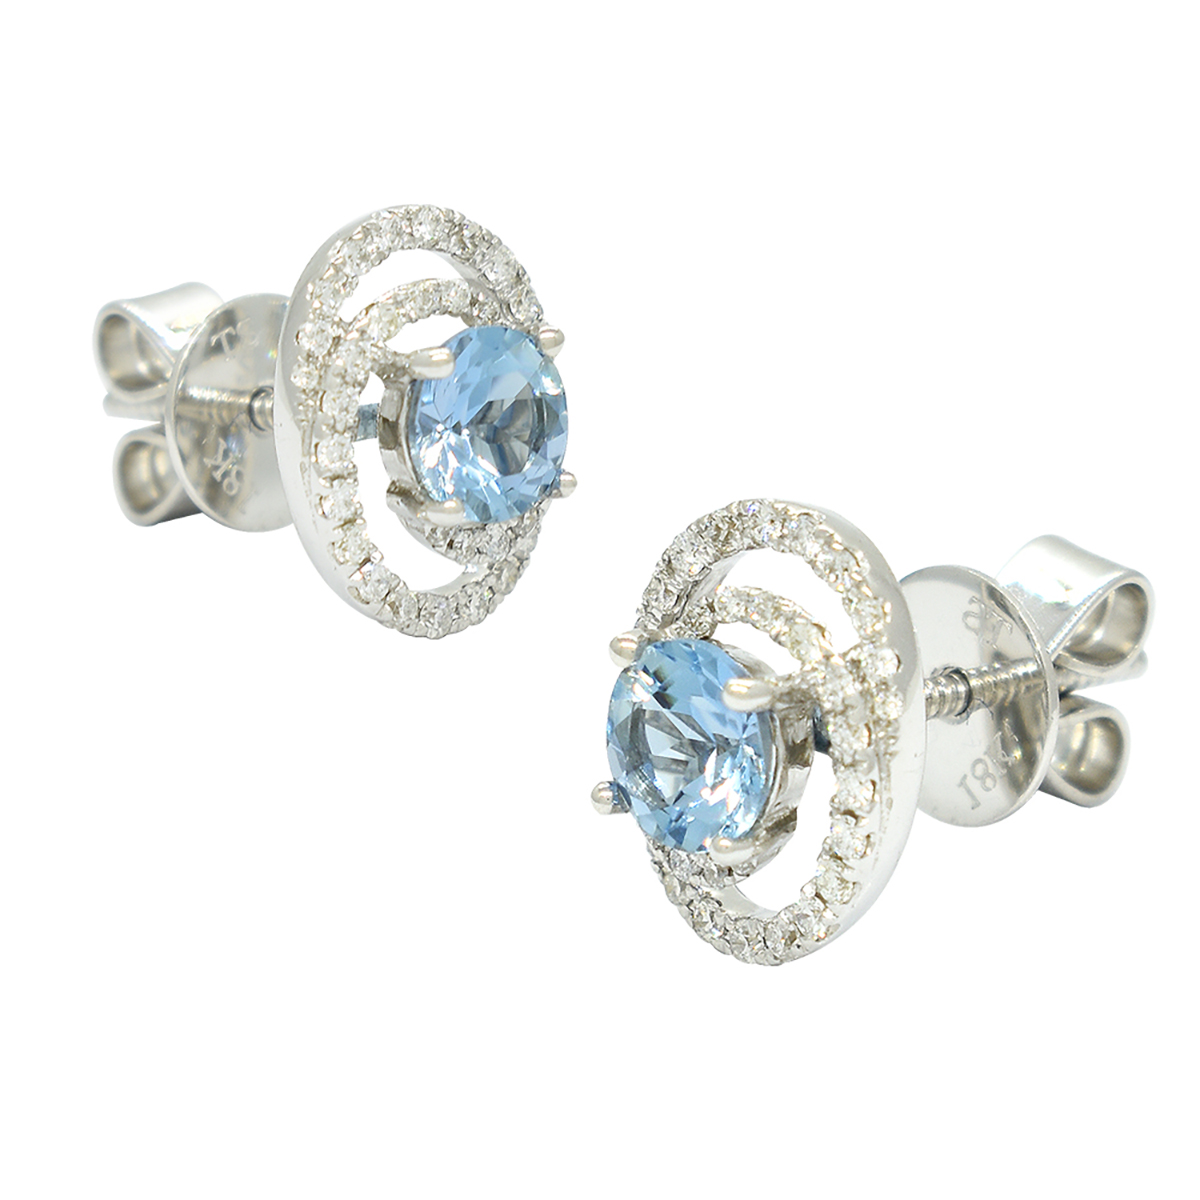 aquamarine-and-diamond-stud-earrings-in-18k-white-gold-in-fine-pave-setting